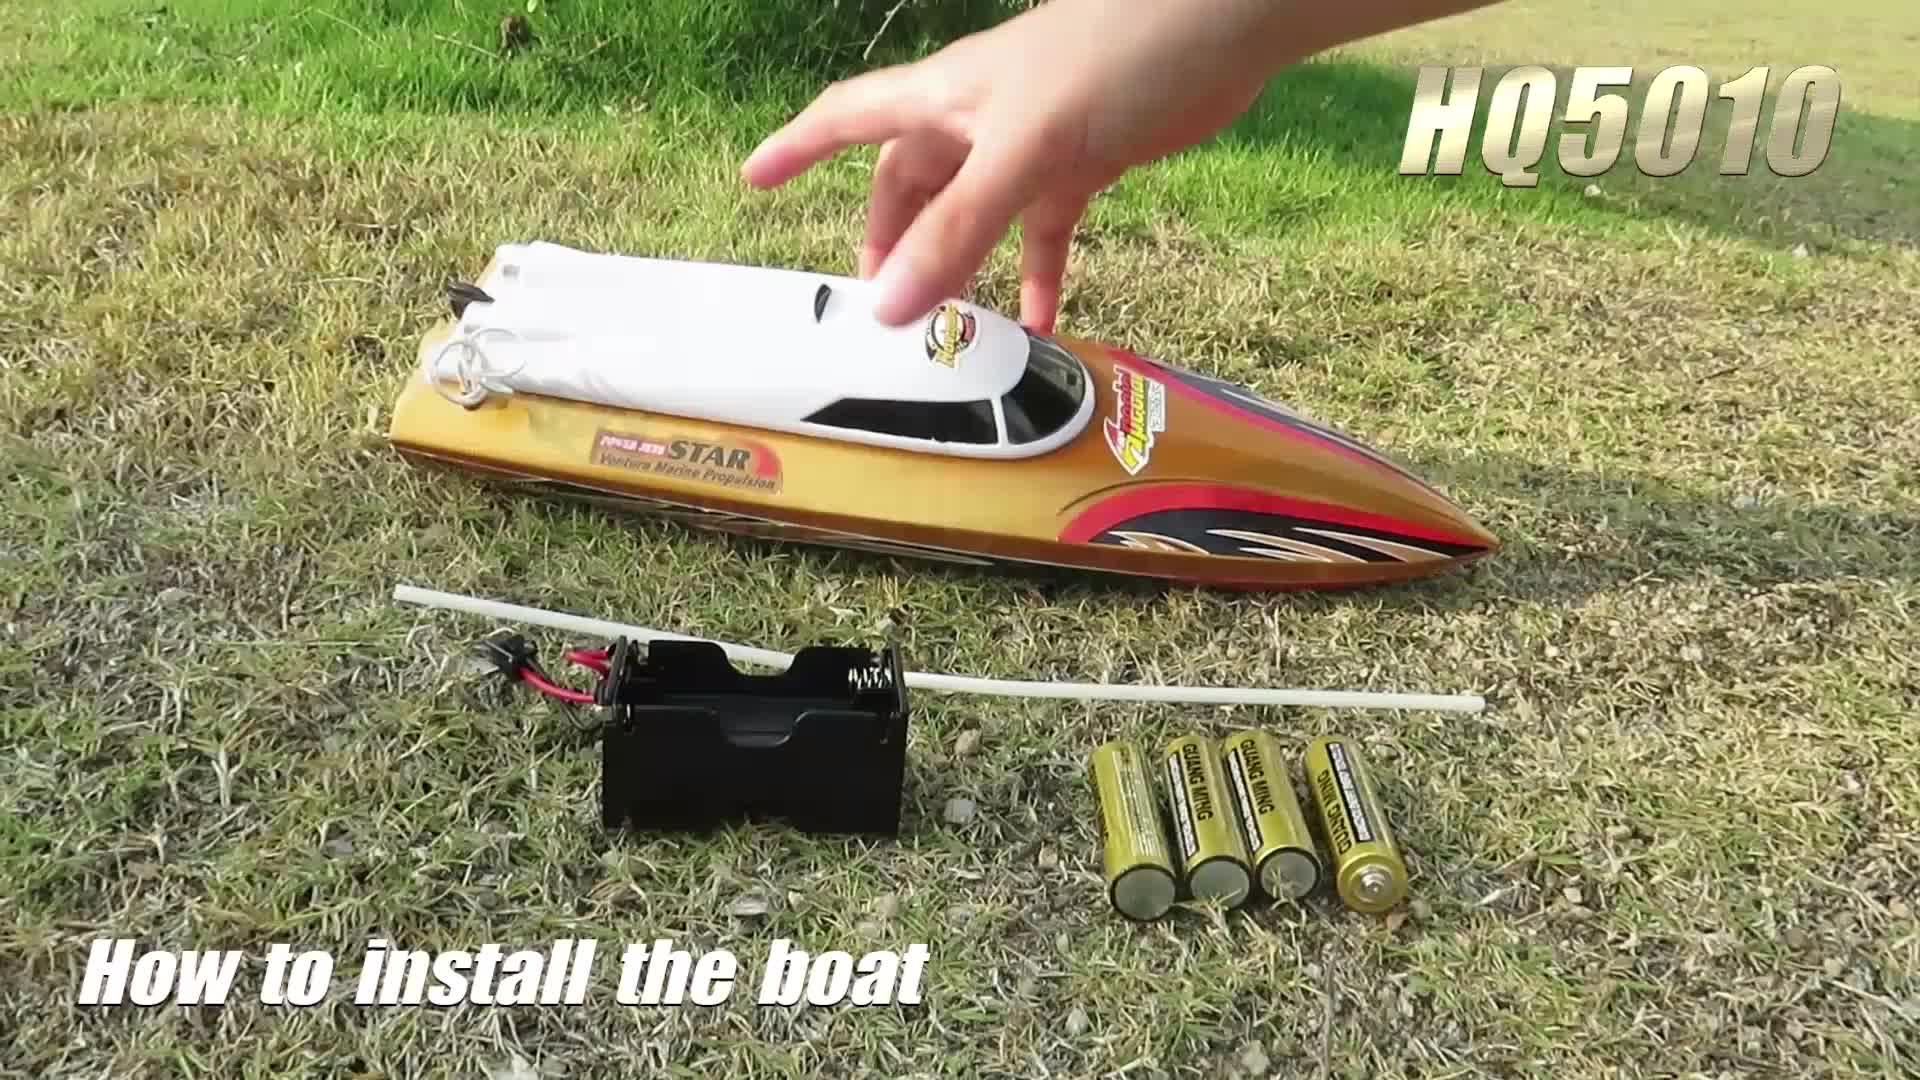 Flytec HQ5010 Infrared Control 15km/h Super Speed Electric Boat Toys For Kids Outdoor Summer Water Playing